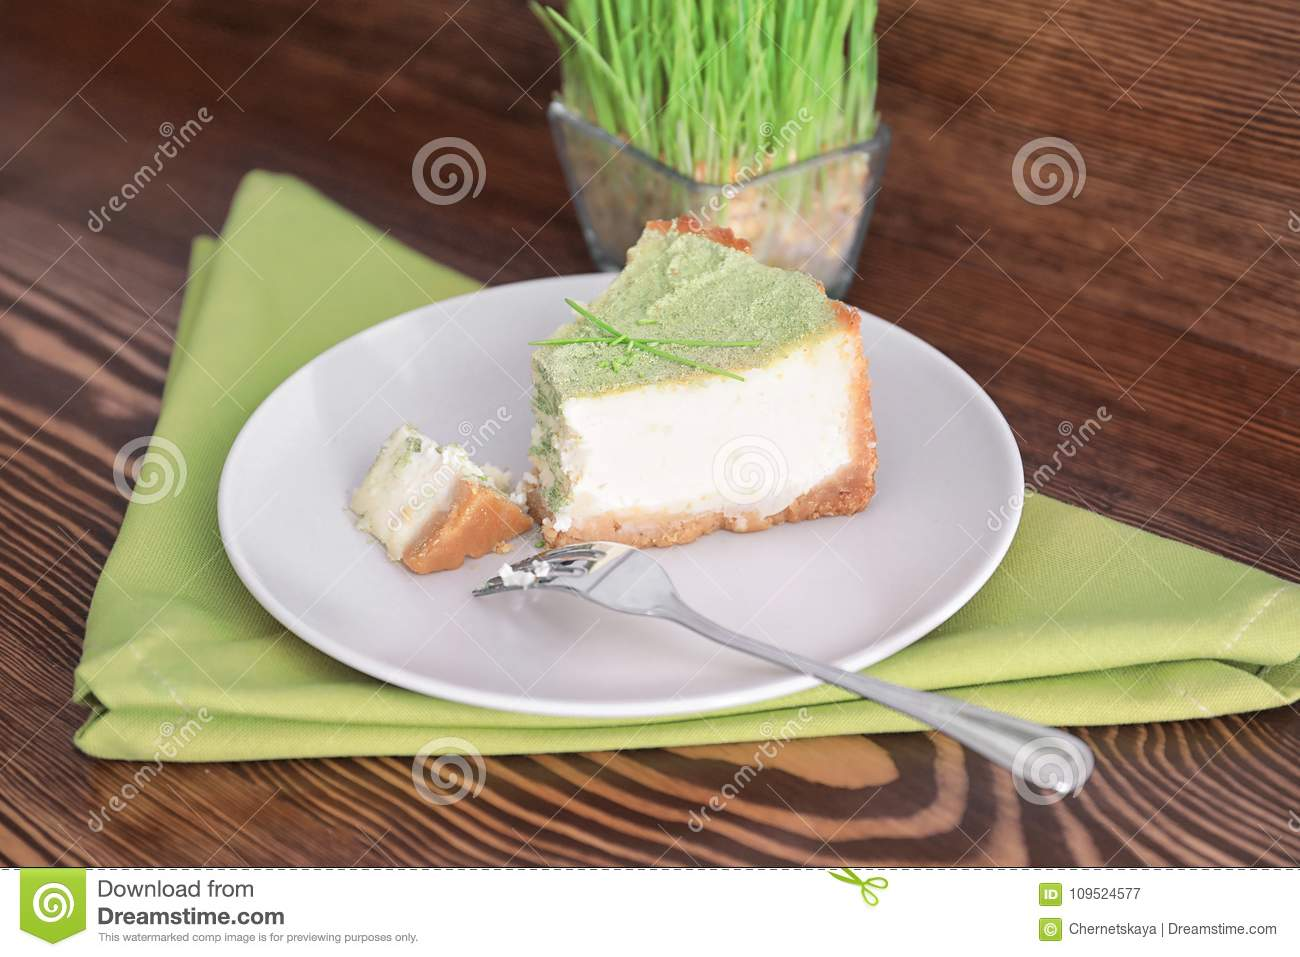 Piece of tasty cake on plate.